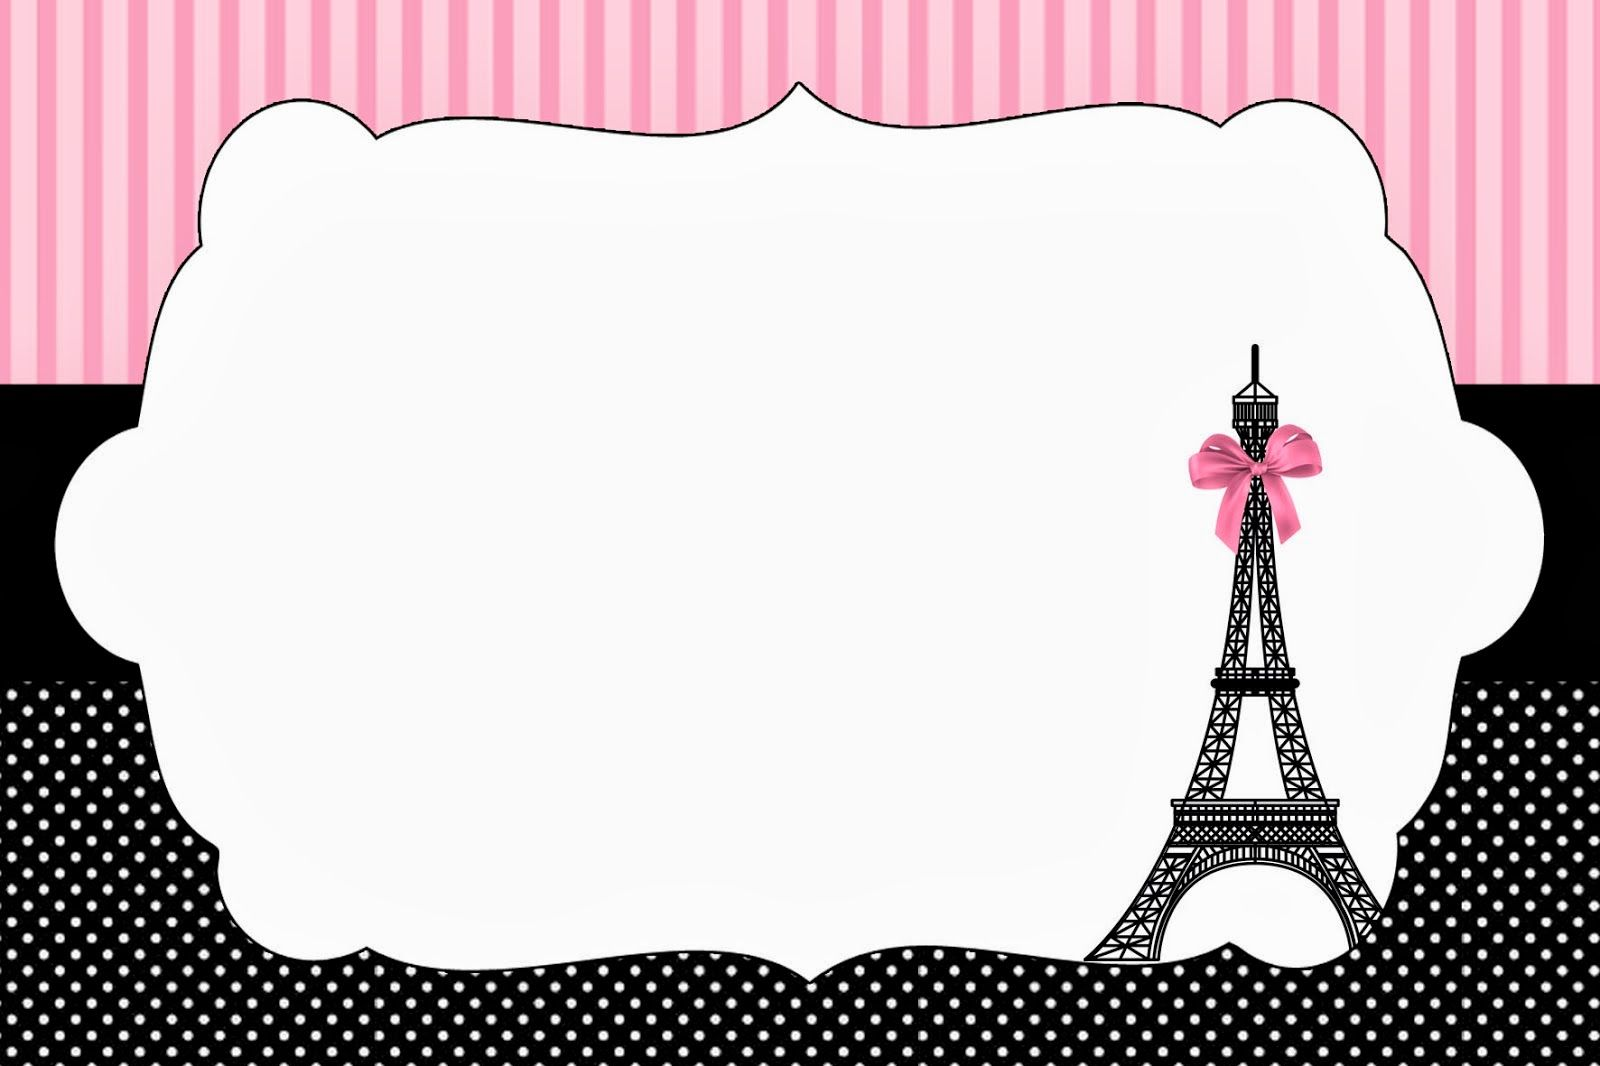 Paris invitations and free party printables 8th birthday paris invitations and free party printables stopboris Image collections